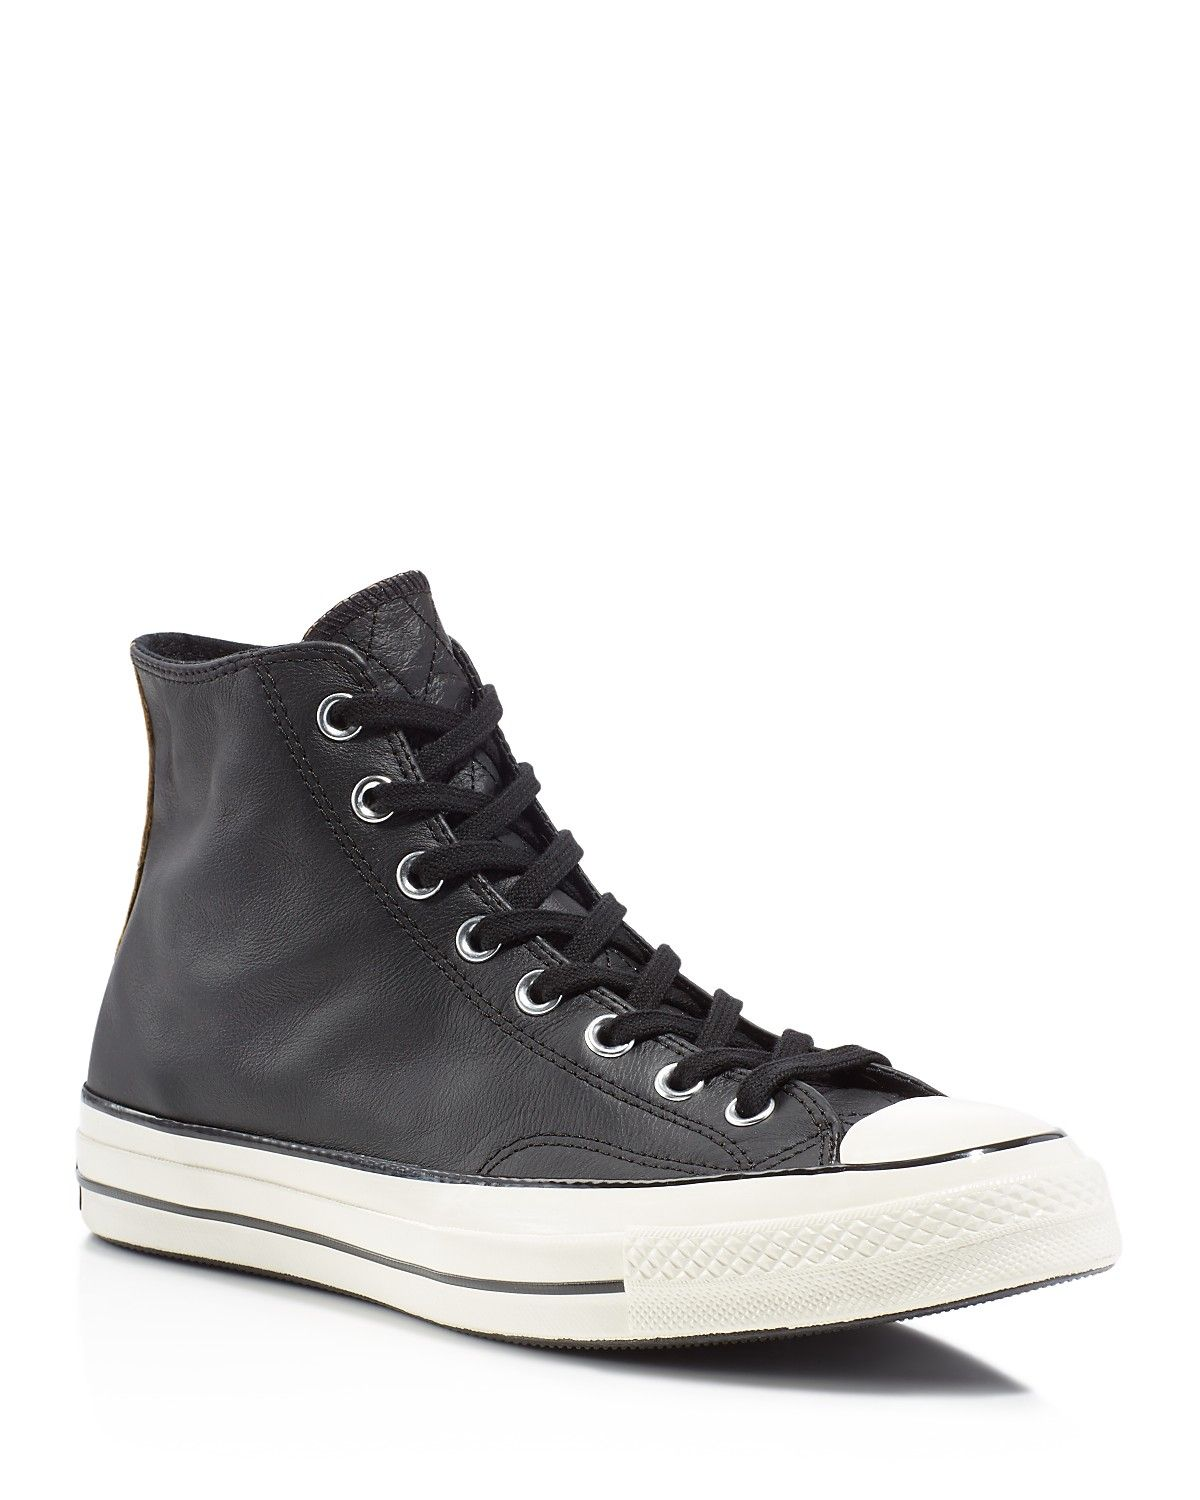 f868445bc3a8 Converse Chuck Taylor All Star Leather High Top Sneakers - Your favorite  Converse high-top sneakers get a modern update in smooth leather.